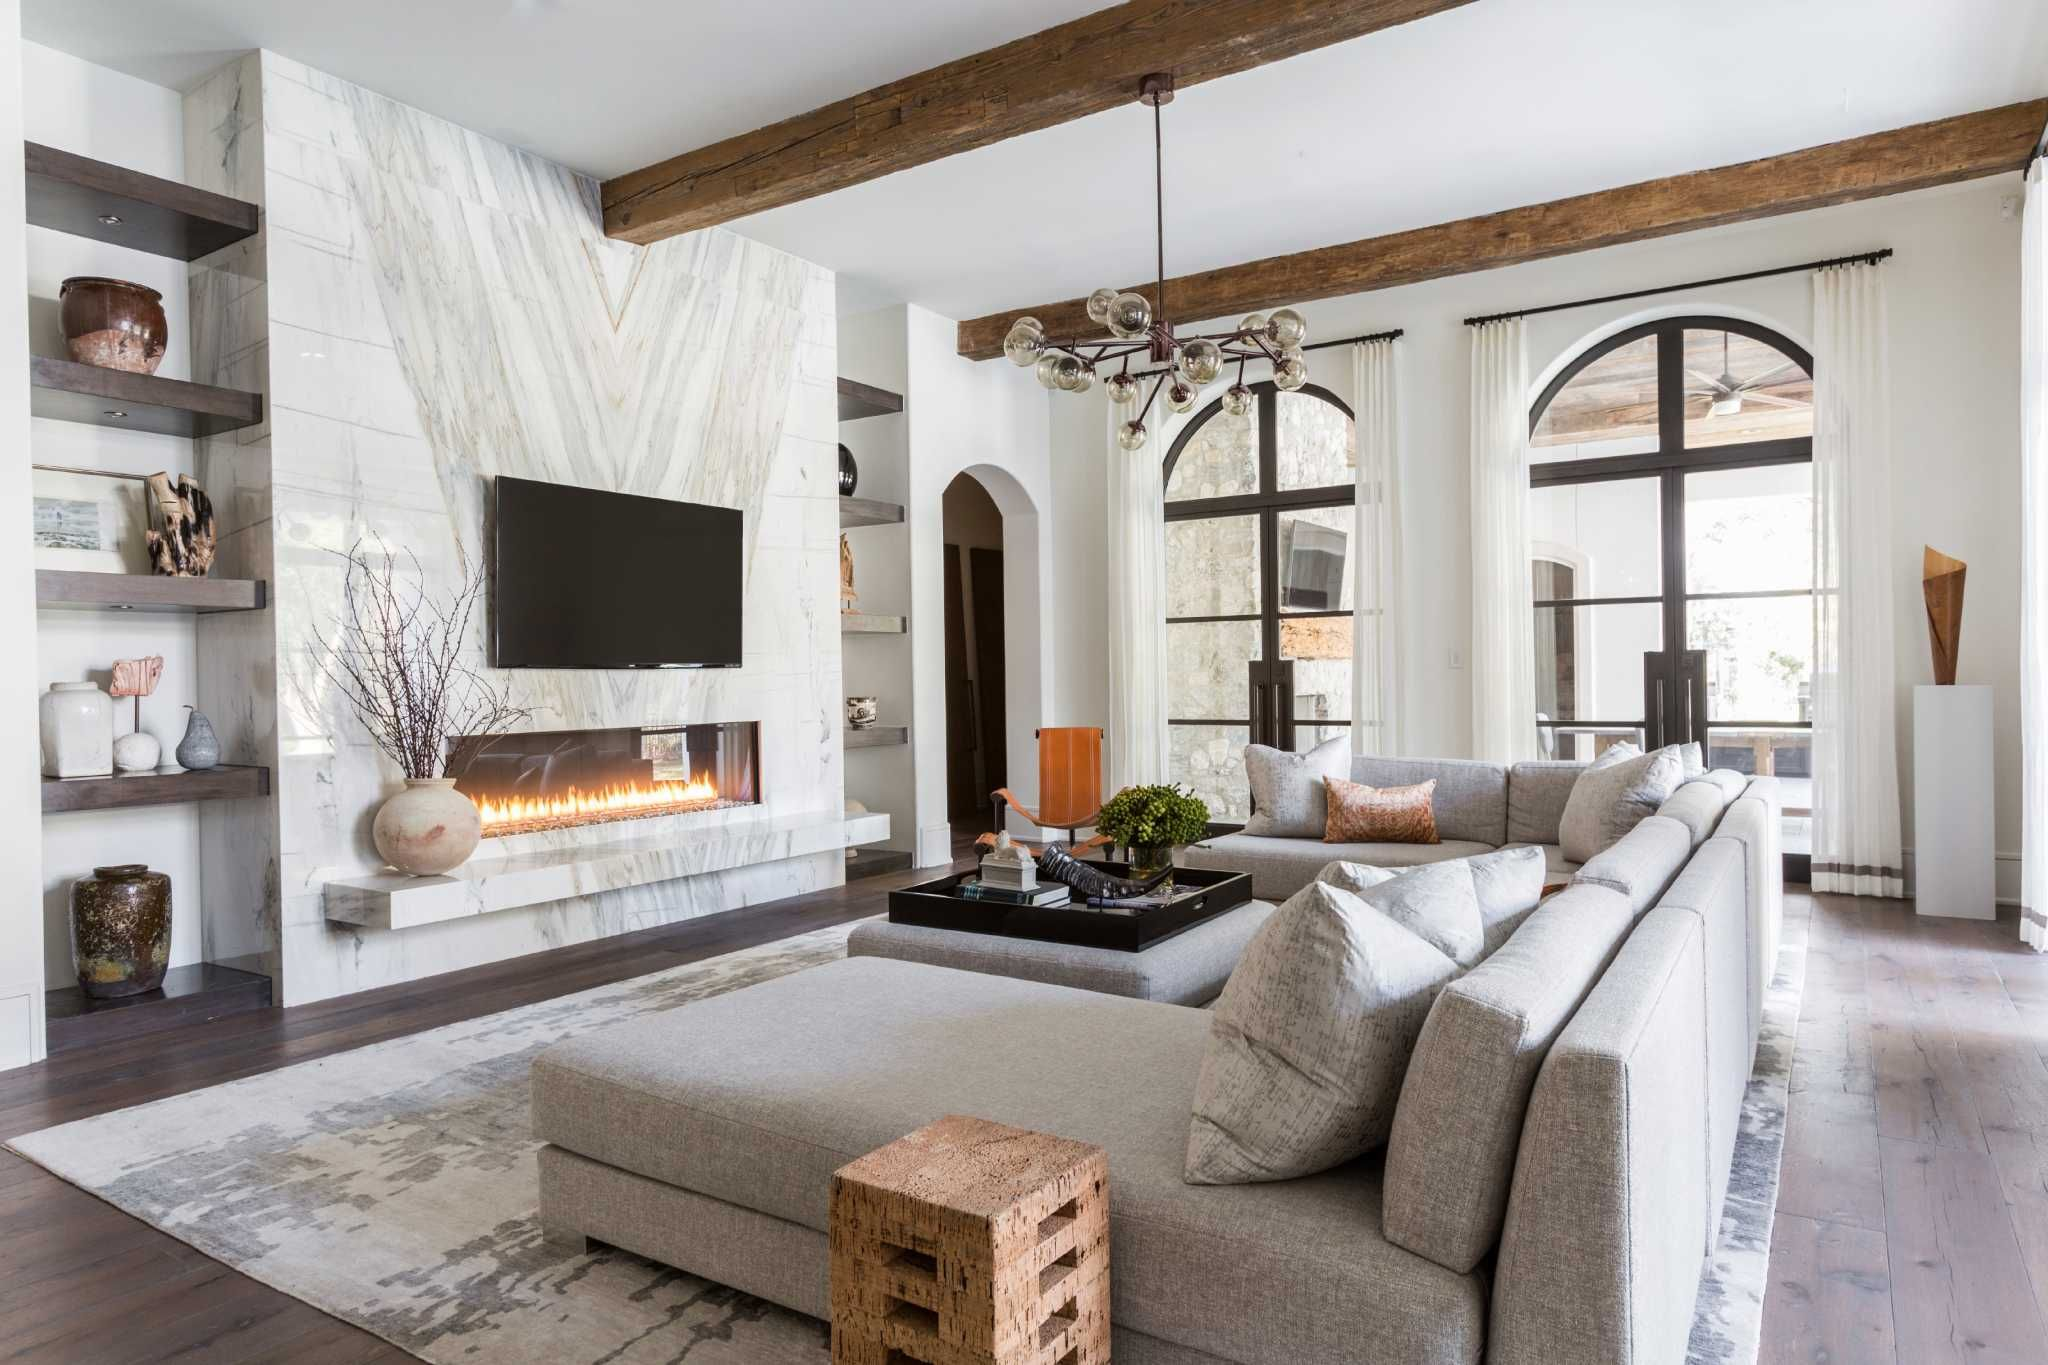 Big And Open A Home Befitting Generations Of Family Fireplace